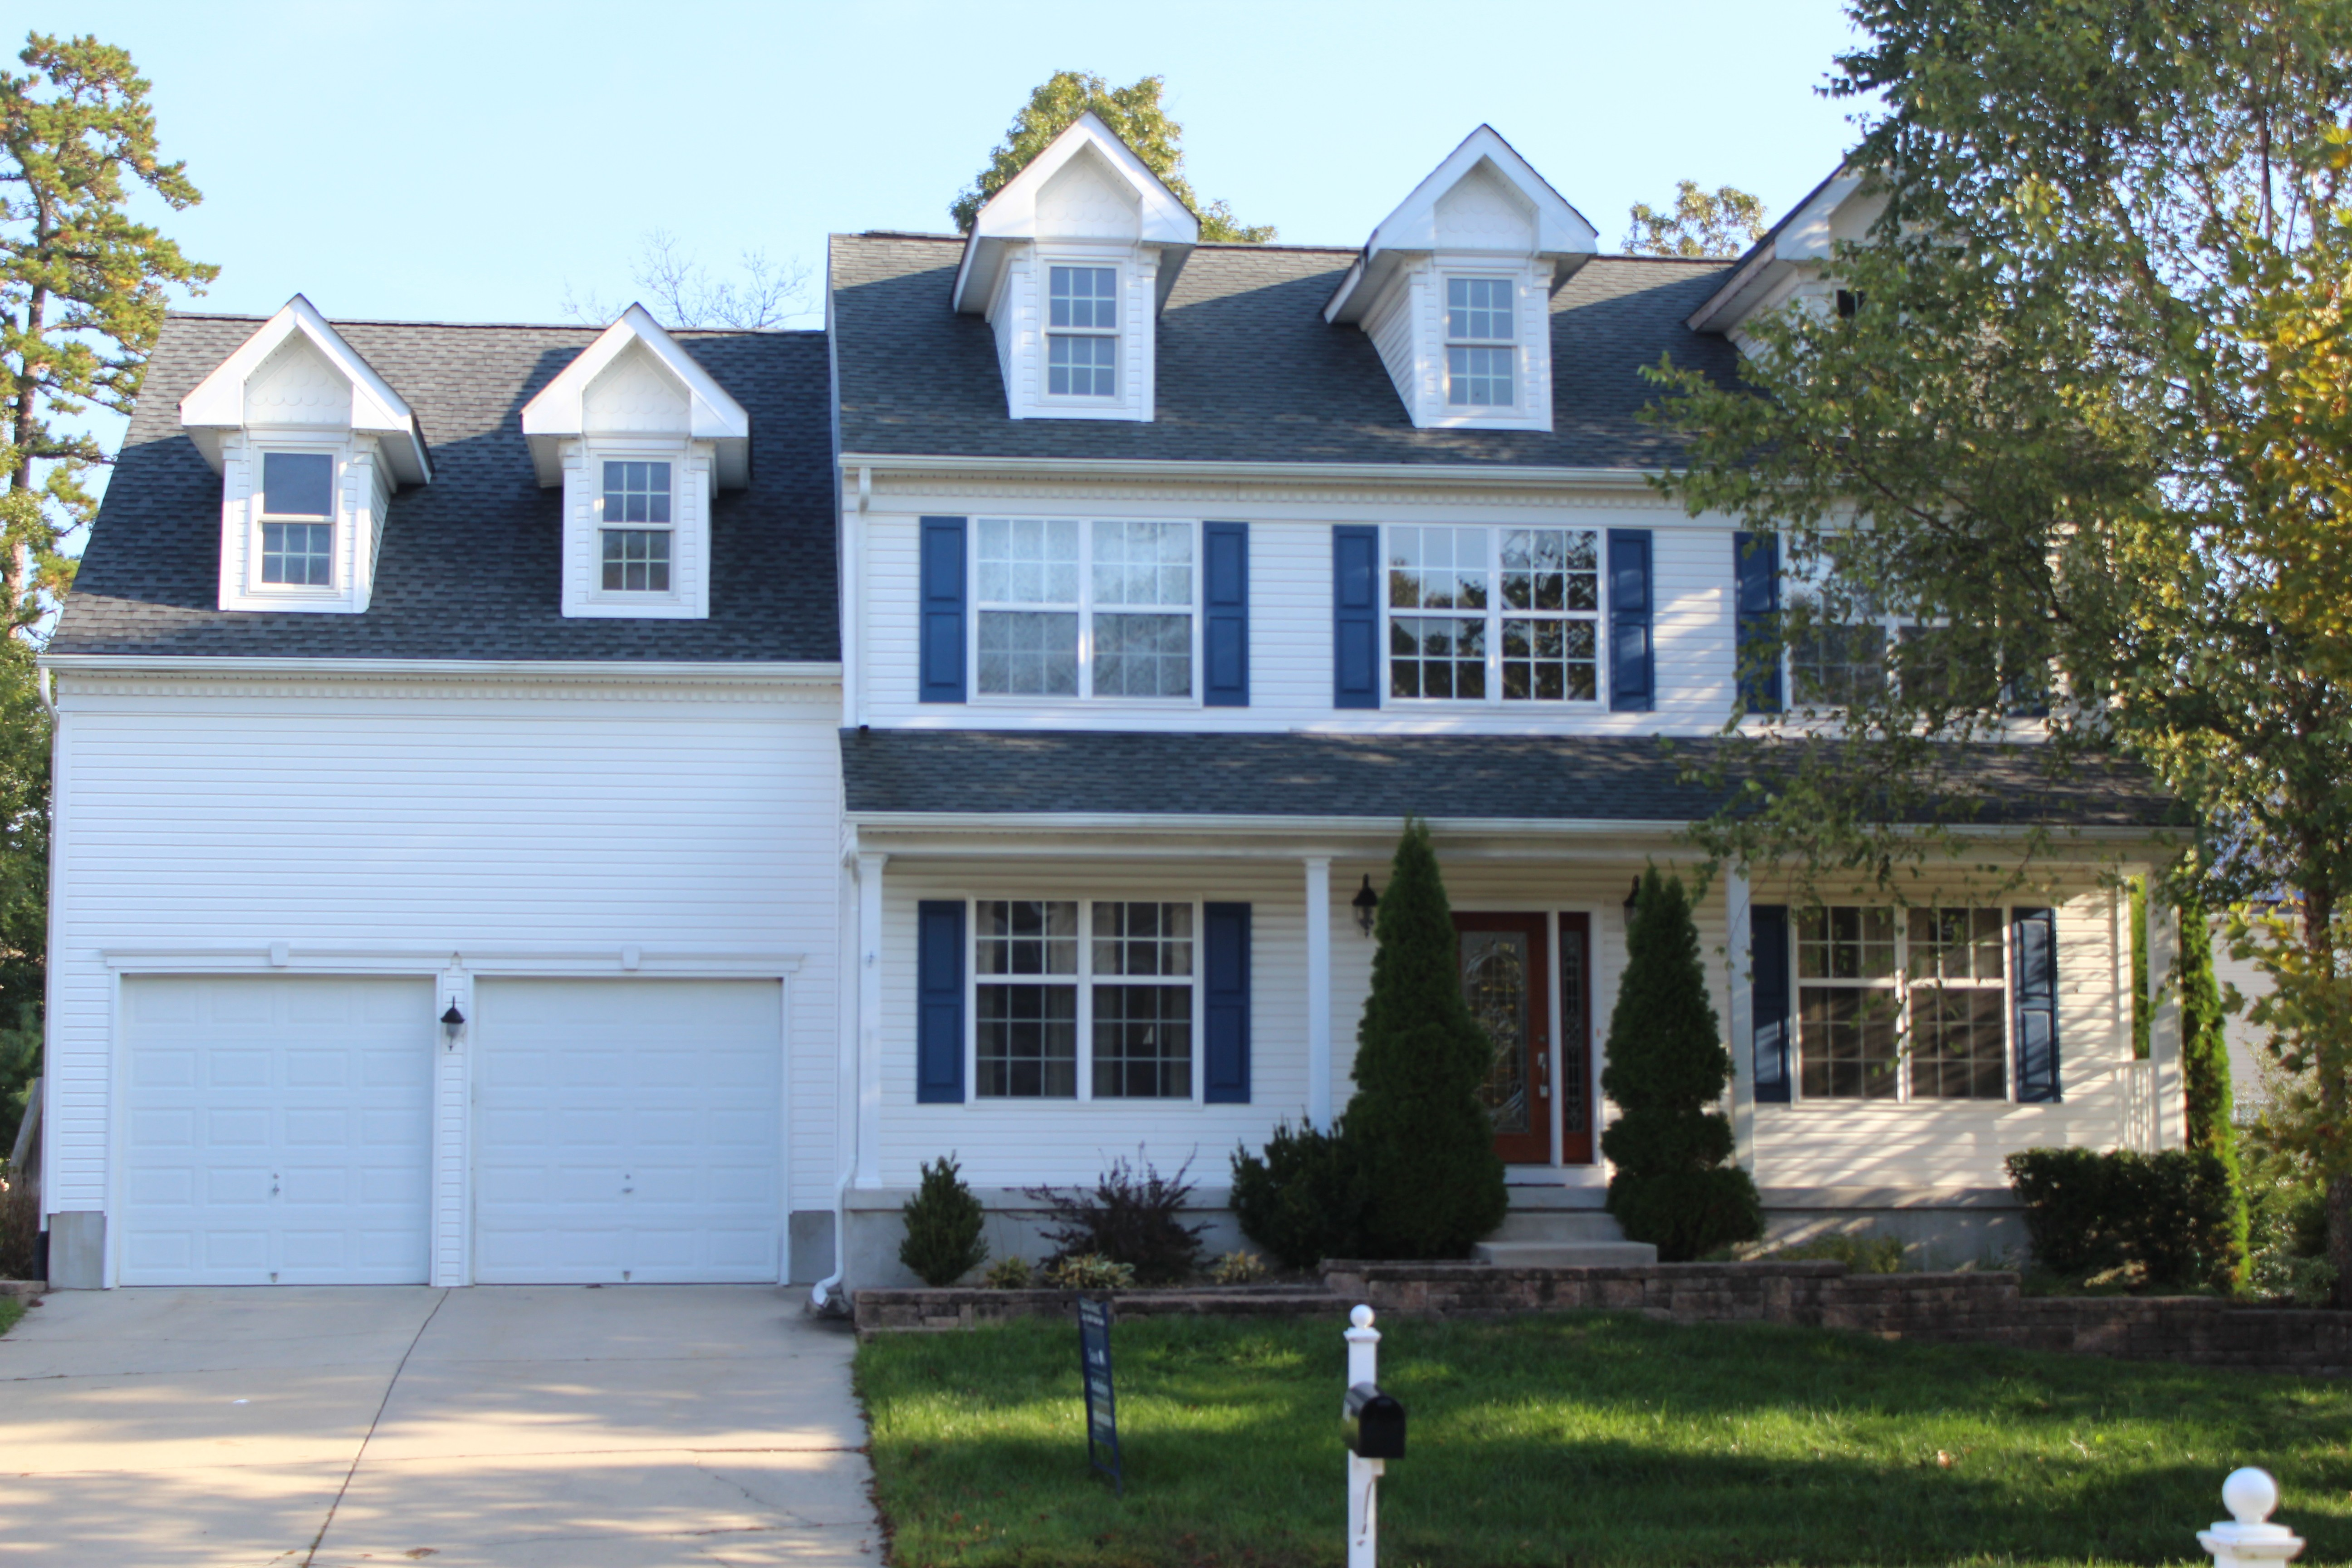 Maison unifamiliale pour l Vente à 103 Offshore Road Egg Harbor Township, New Jersey 08234 États-Unis